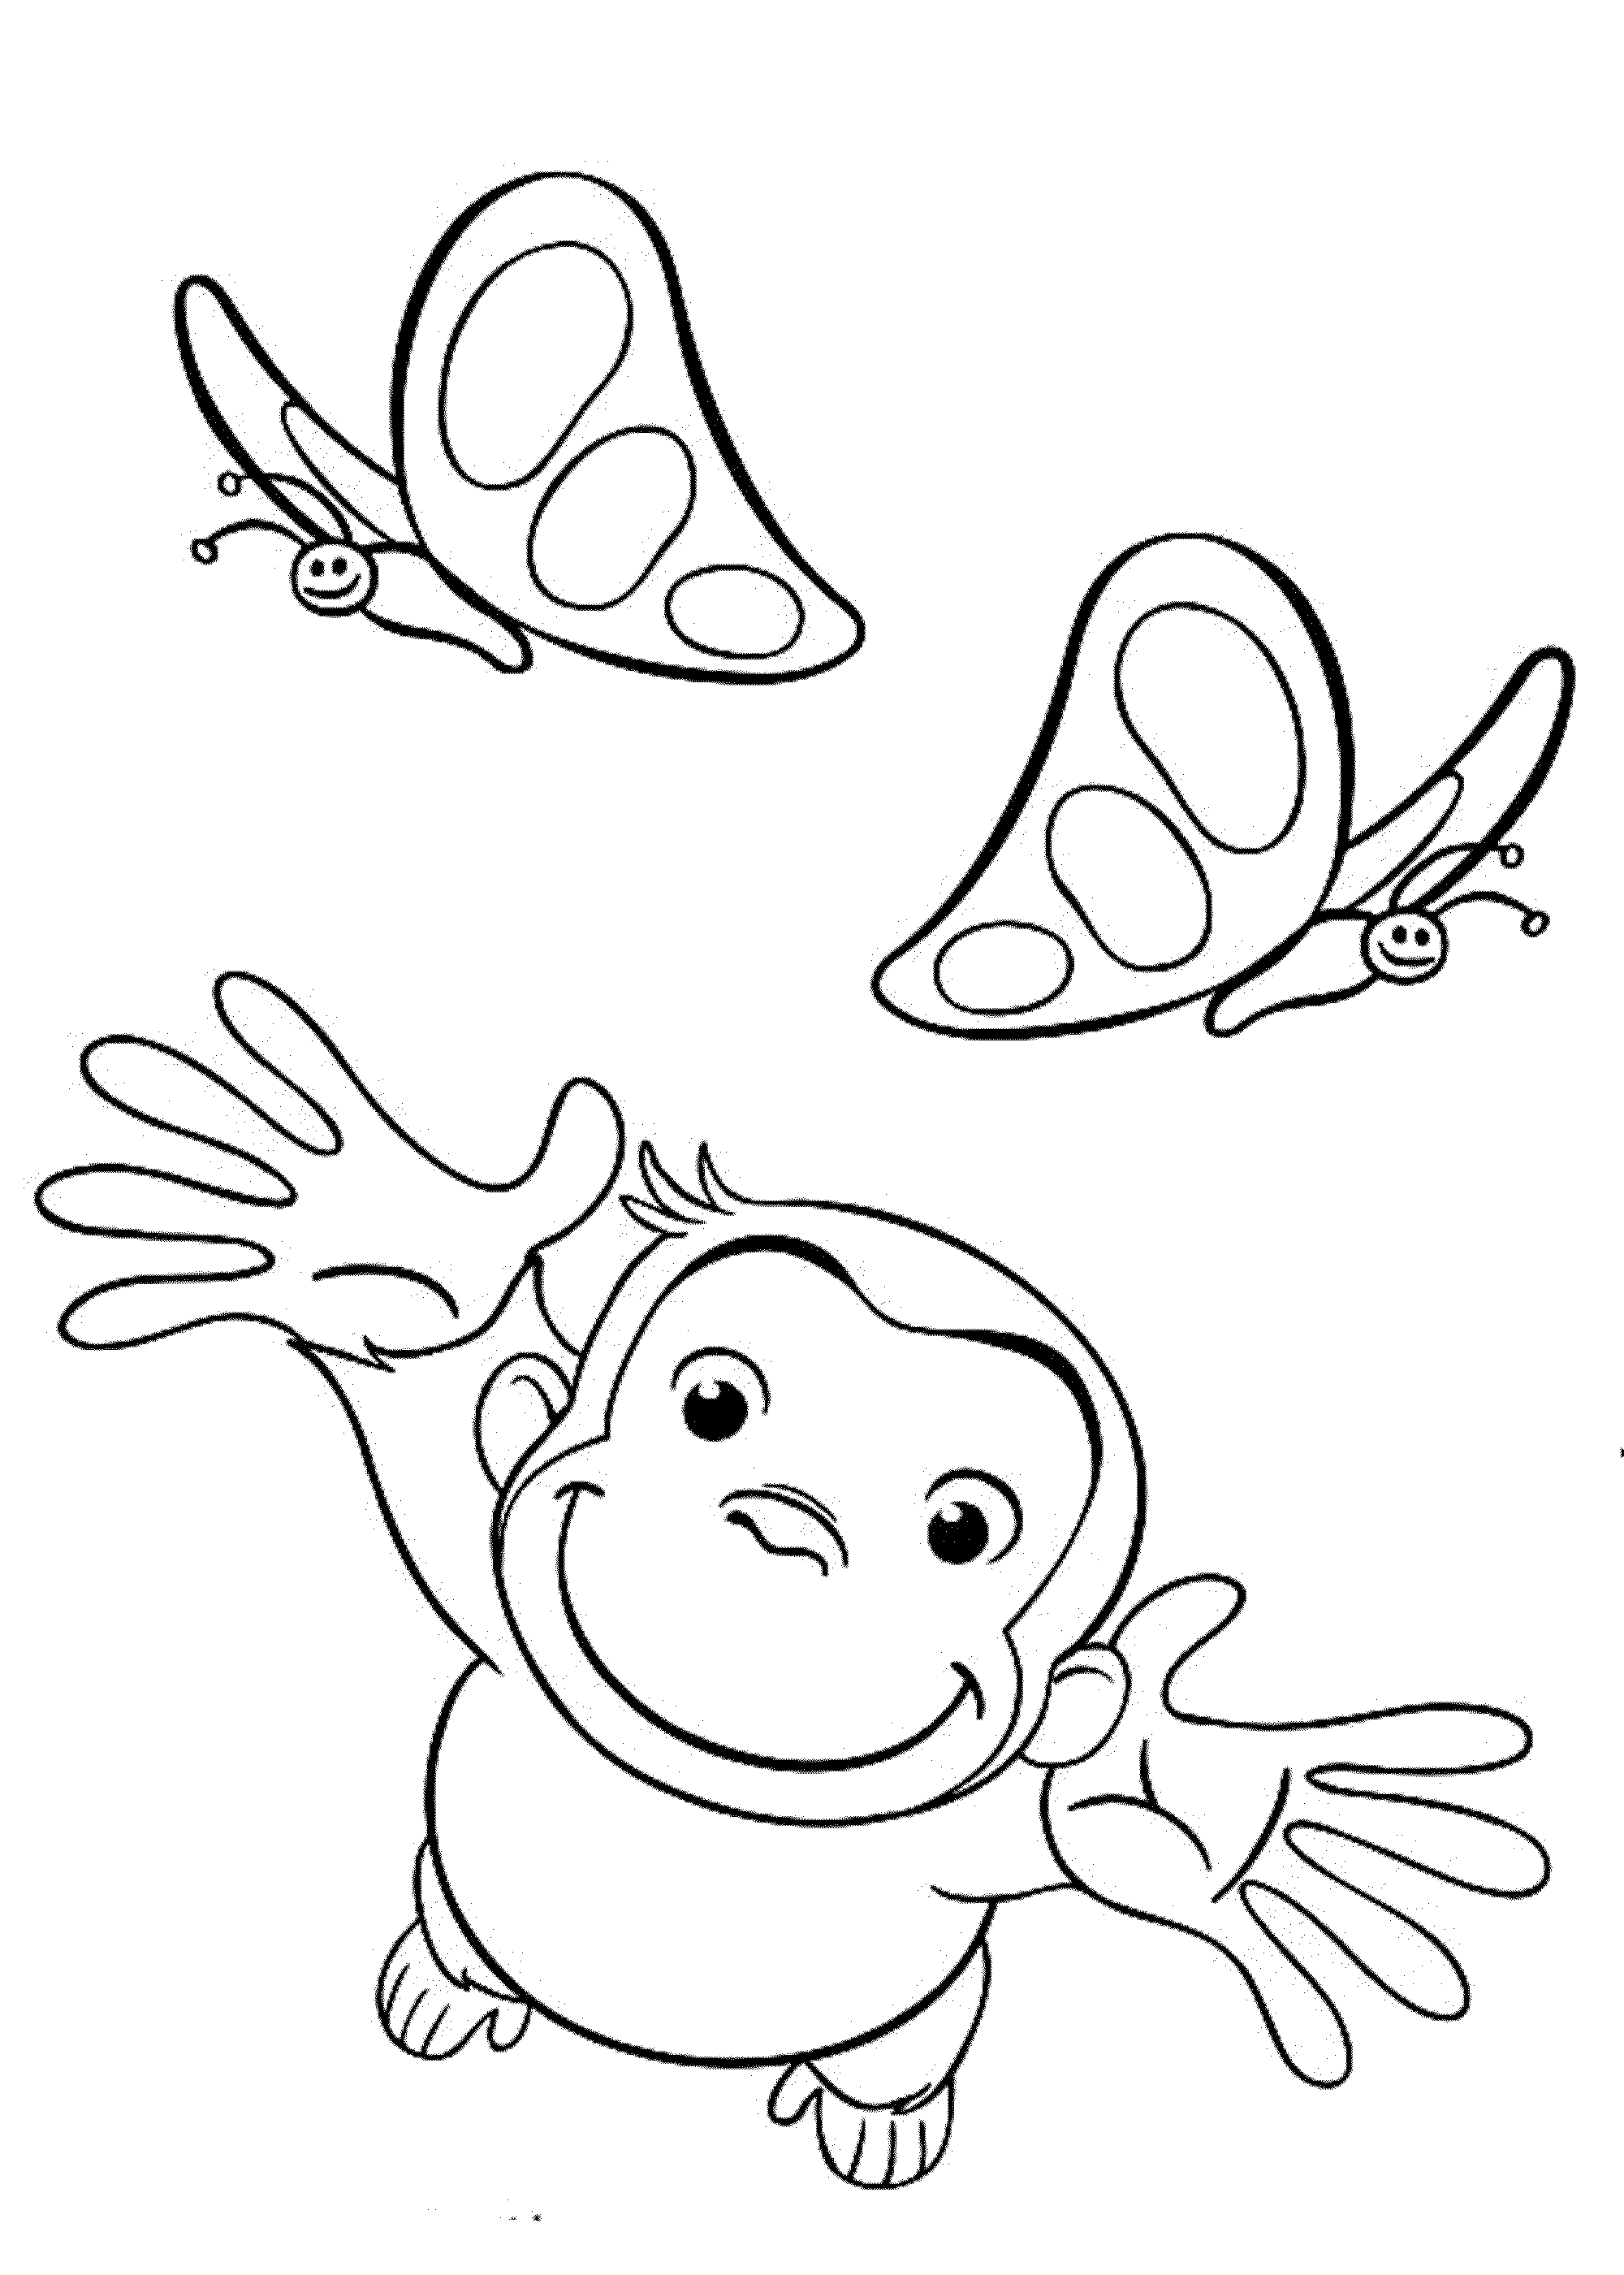 Print & Download - Curious George Coloring Pages to Stimulate Kids ...